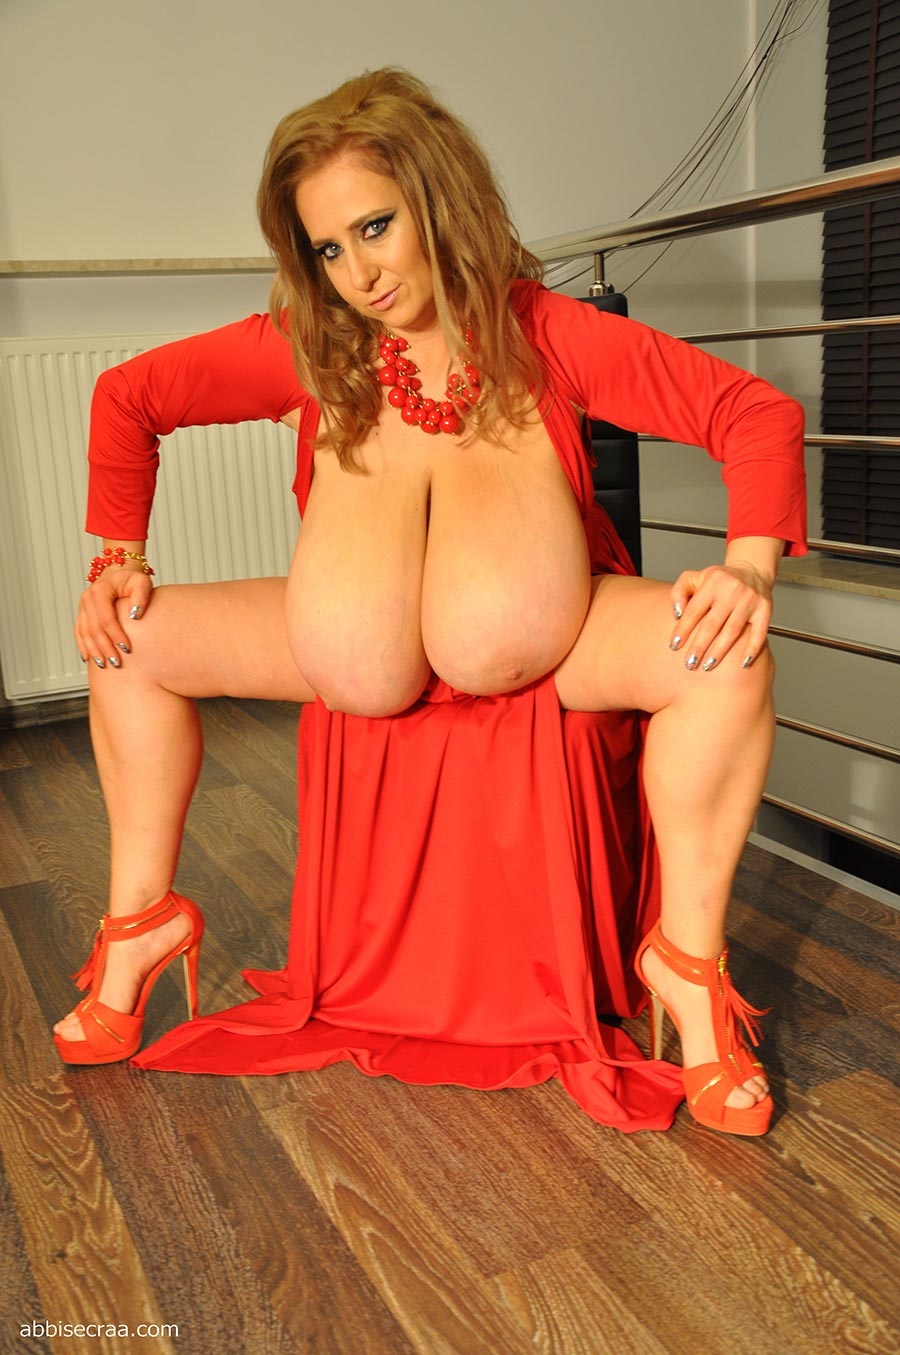 Abbi Secraa in a tight red dress  The Boobs Blog